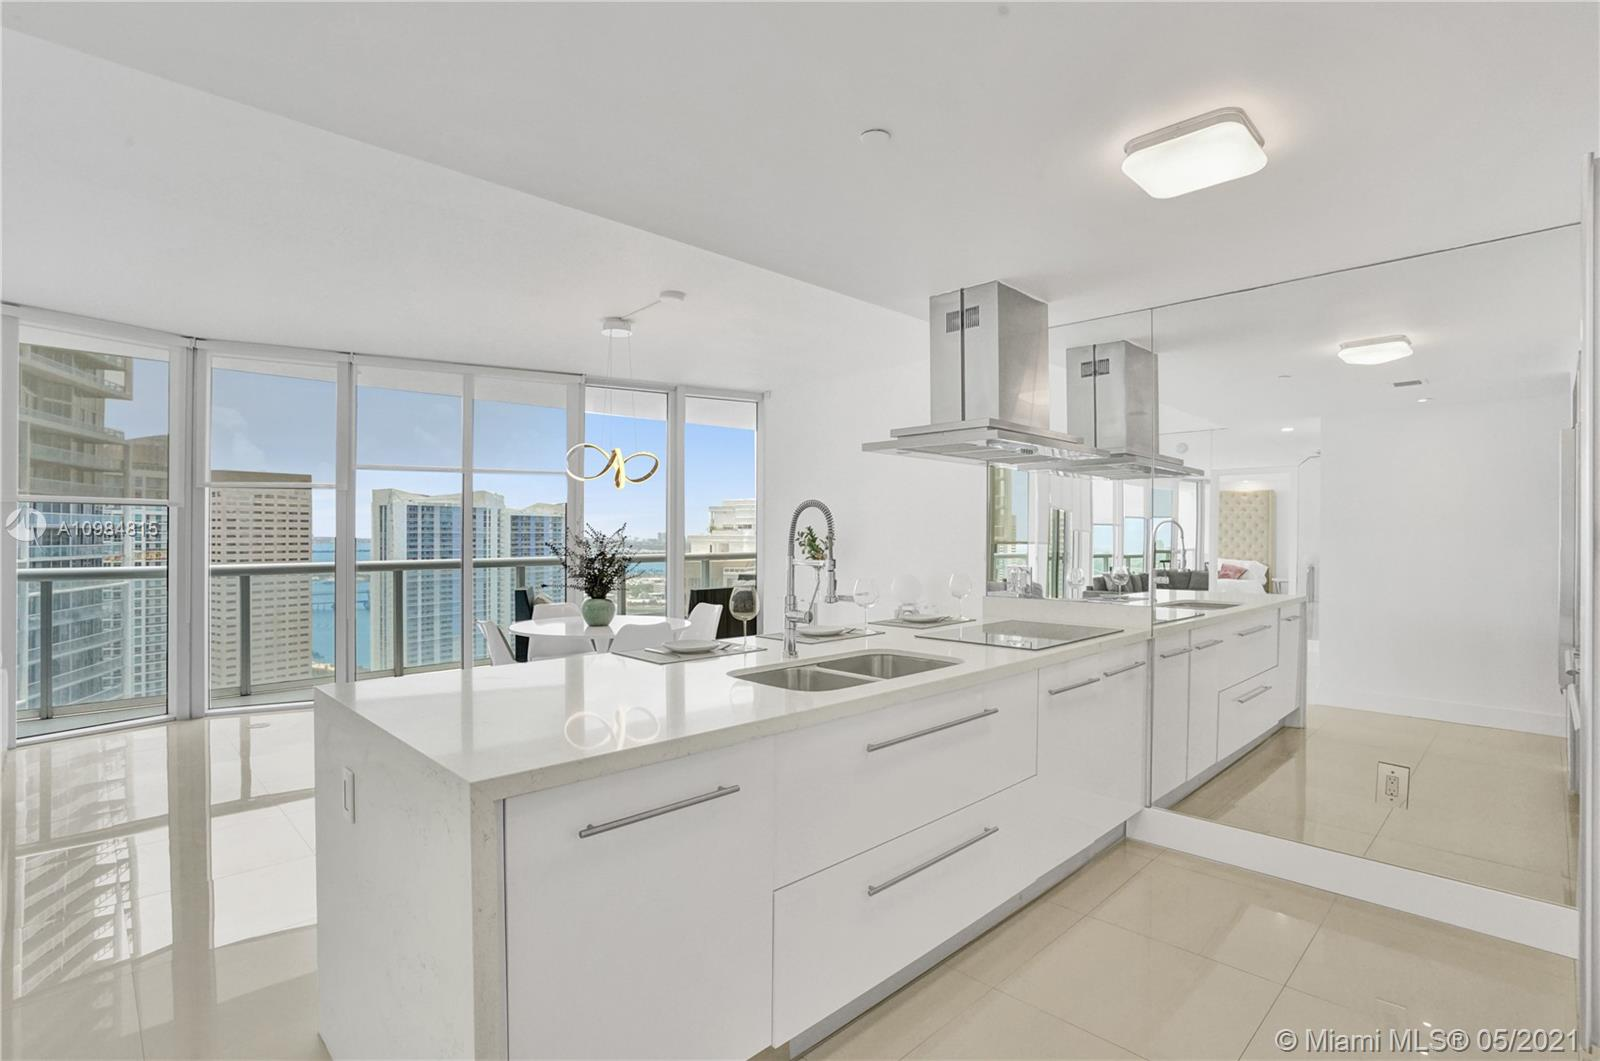 Enjoy this unique high end designer unit with stunning water views from every room. This brand new updated 2/2 unit with modern elegant furnishings is waiting you with all the details that make your life comfortable. It has a fully equipped new kitchen, designer cabinets, televisions, towels, bedding, etc. The famous Icon Brickell's resort-style 5-star amenities include a 300-foot long pool, 50-person hot tub, 28,000-square-foot spa and fitness center, movie theater, game room, poolside food and beverage service cafe, 24 hour full service concierge and valet parking. Unit is rented until September 30, 2021 for $ 4350. Price includes furniture and full equipment. Just bring your toothbrush.